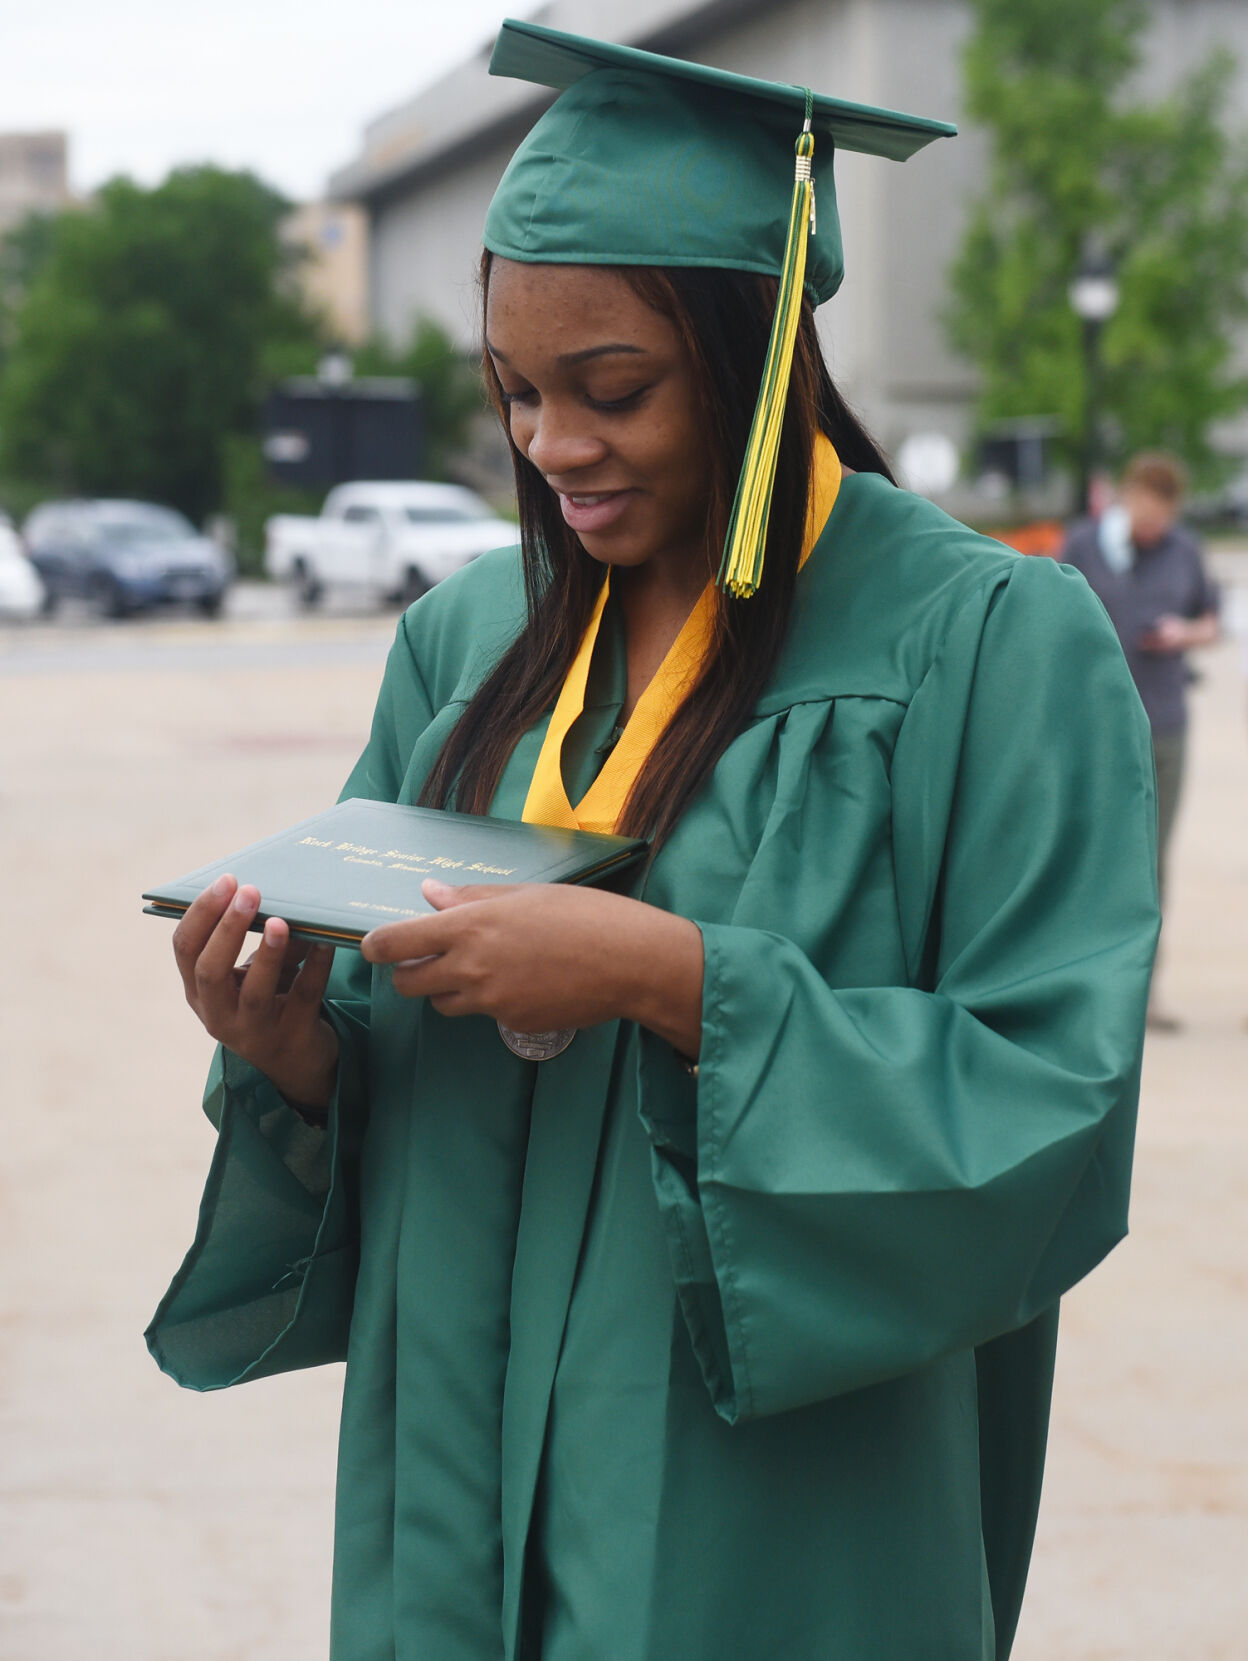 Aris Collier holds her diploma